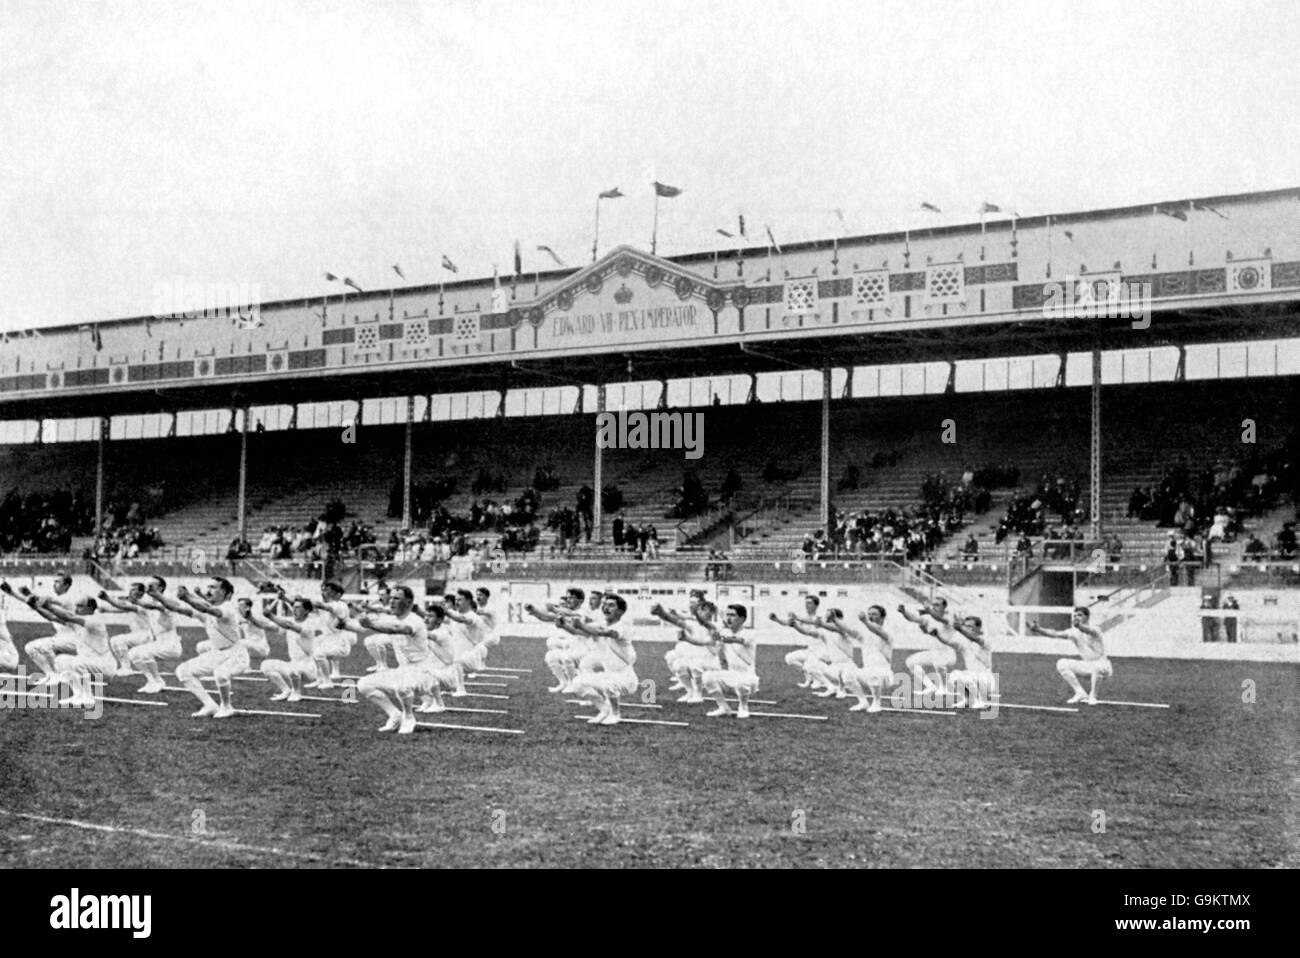 Gymnastics - London Olympic Games 1908 - Team Competition - White City - Stock Image